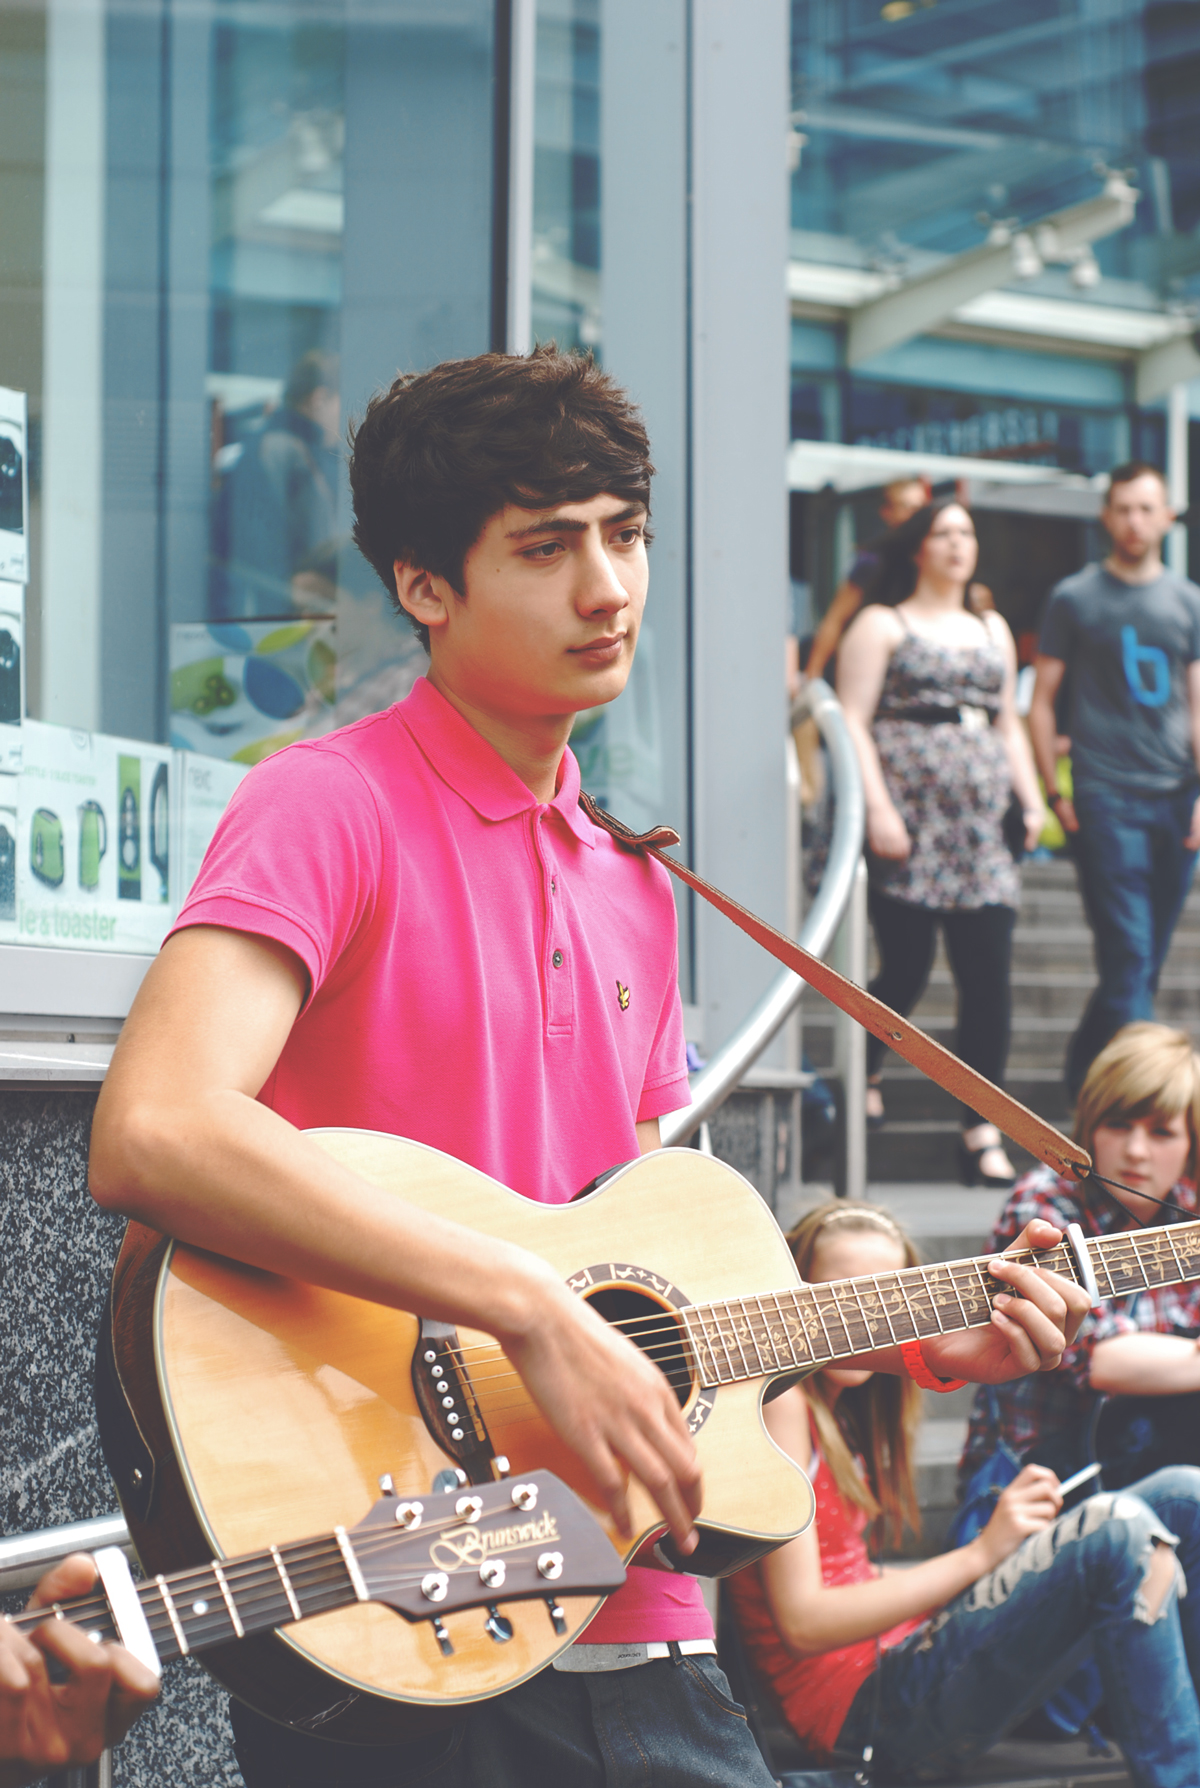 A photograph of a young street musician